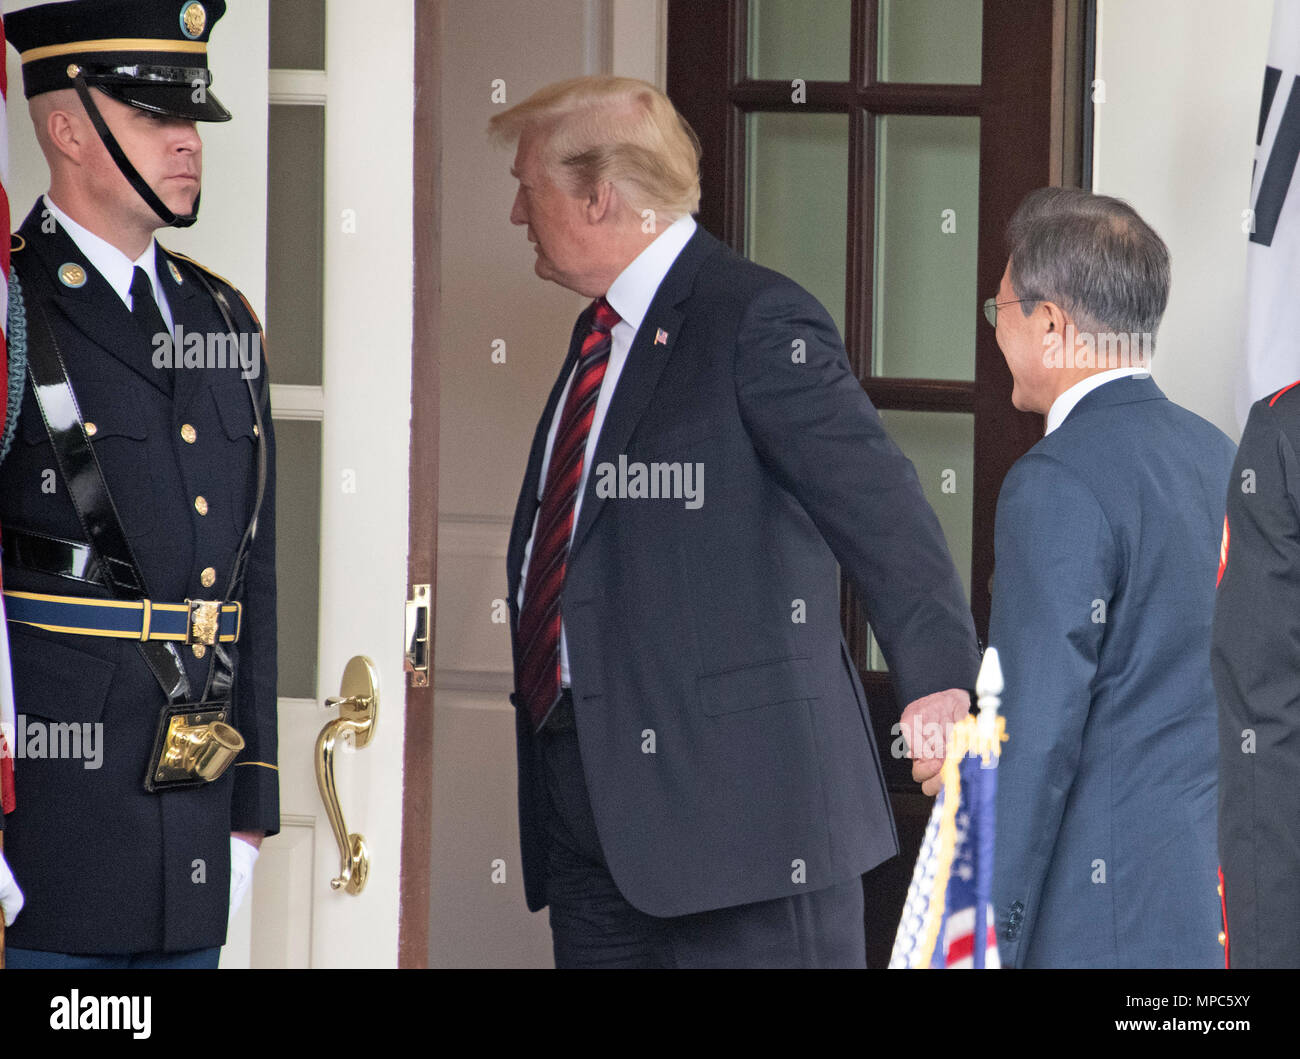 Singapore. 12th June, 2018. United States President Donald J. Trump holds the hand of President Moon Jae-in of South Korea as he arrives for talks at the White House in Washington, DC on Tuesday, May 22, 2018. The two leaders are meeting ahead of President Trump's scheduled summit with Kim Jung-un of North Korea which is tentatively scheduled for June 12, 2018 in Singapore. Credit: Ron Sachs/CNP | usage worldwide Credit: dpa/Alamy Live News - Stock Image